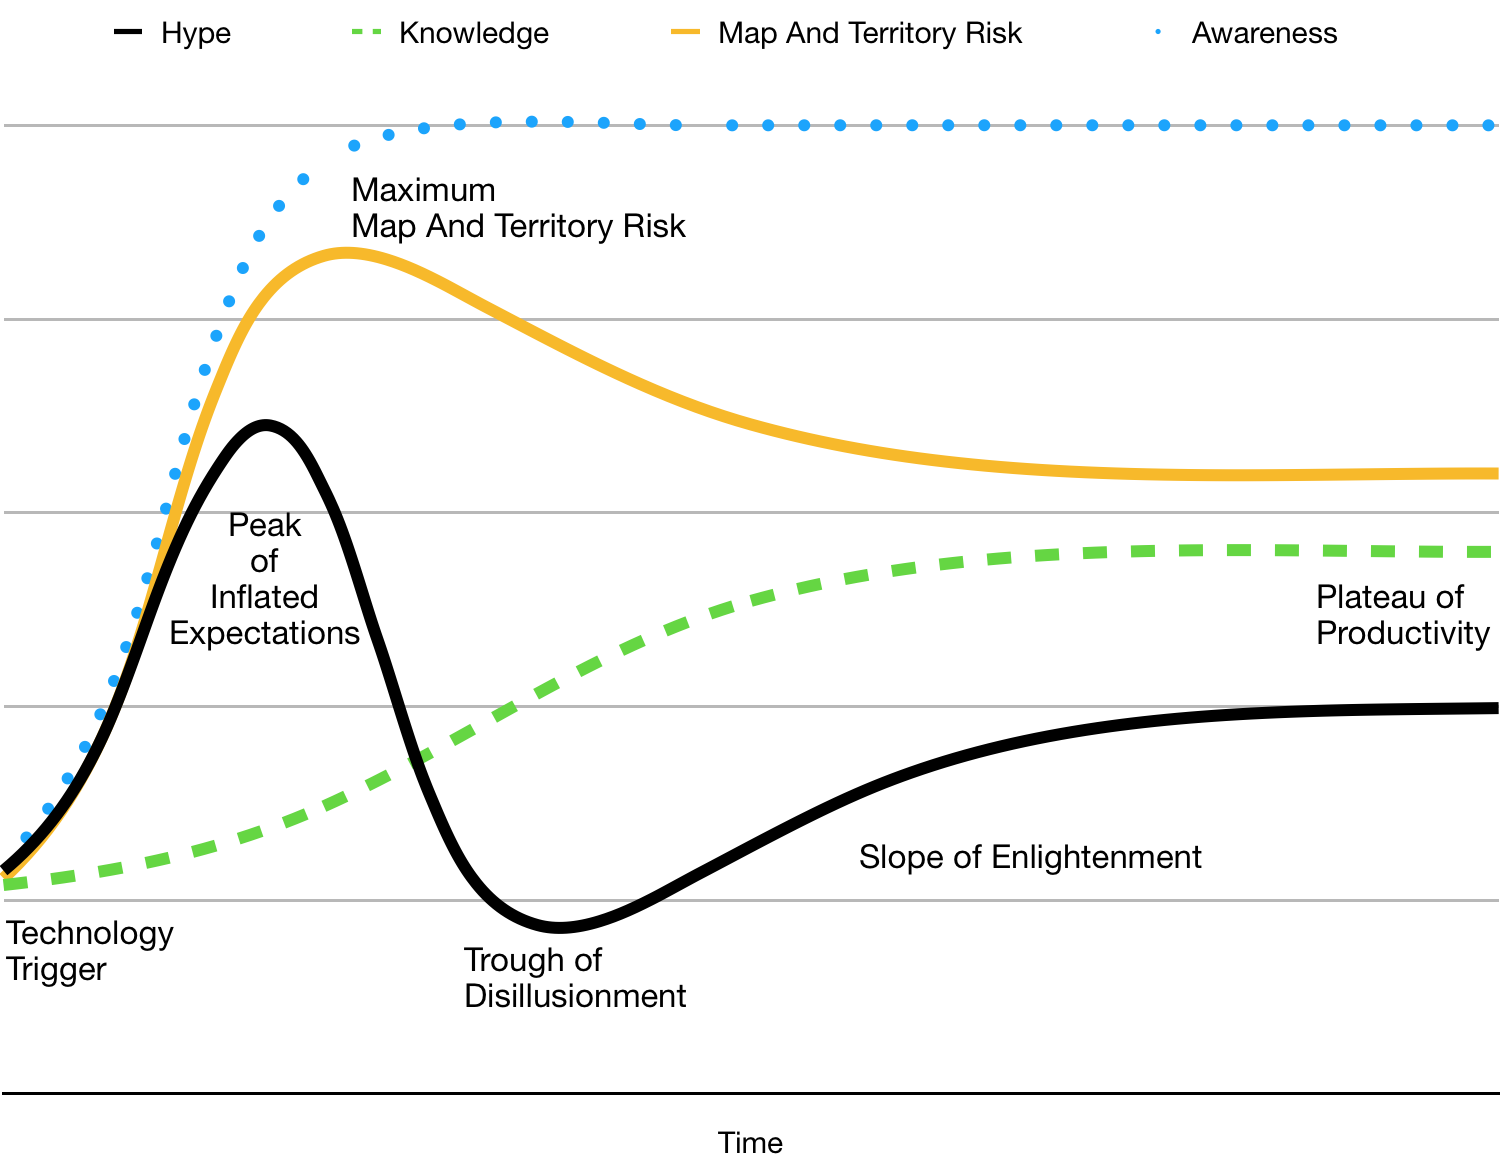 Hype Cycle, along with Map & Territory Risk